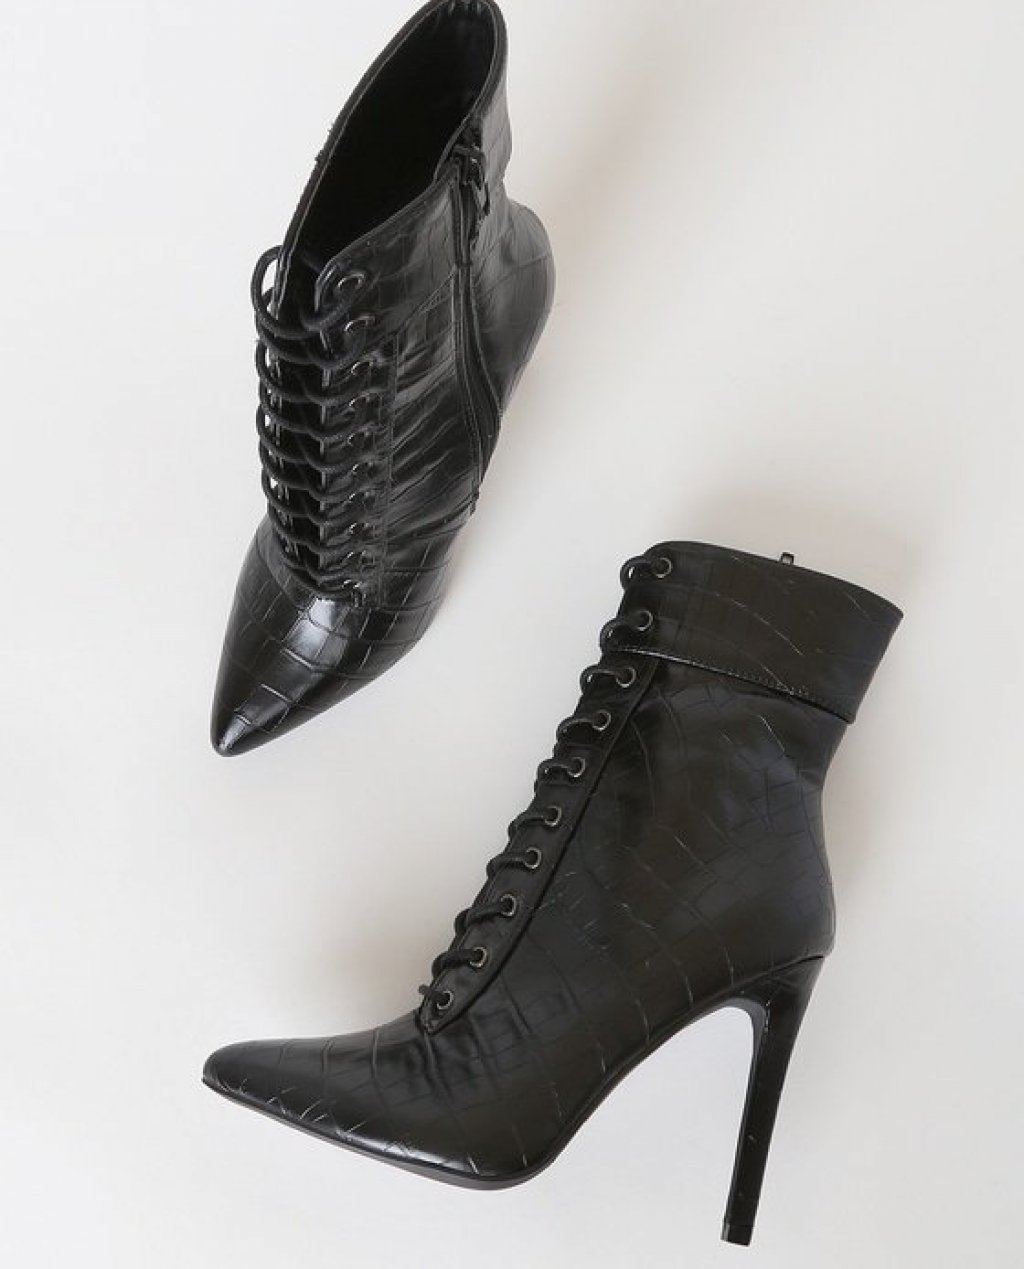 Cleva Black Crocodile-Embossed Mid-Calf High Heel Booties